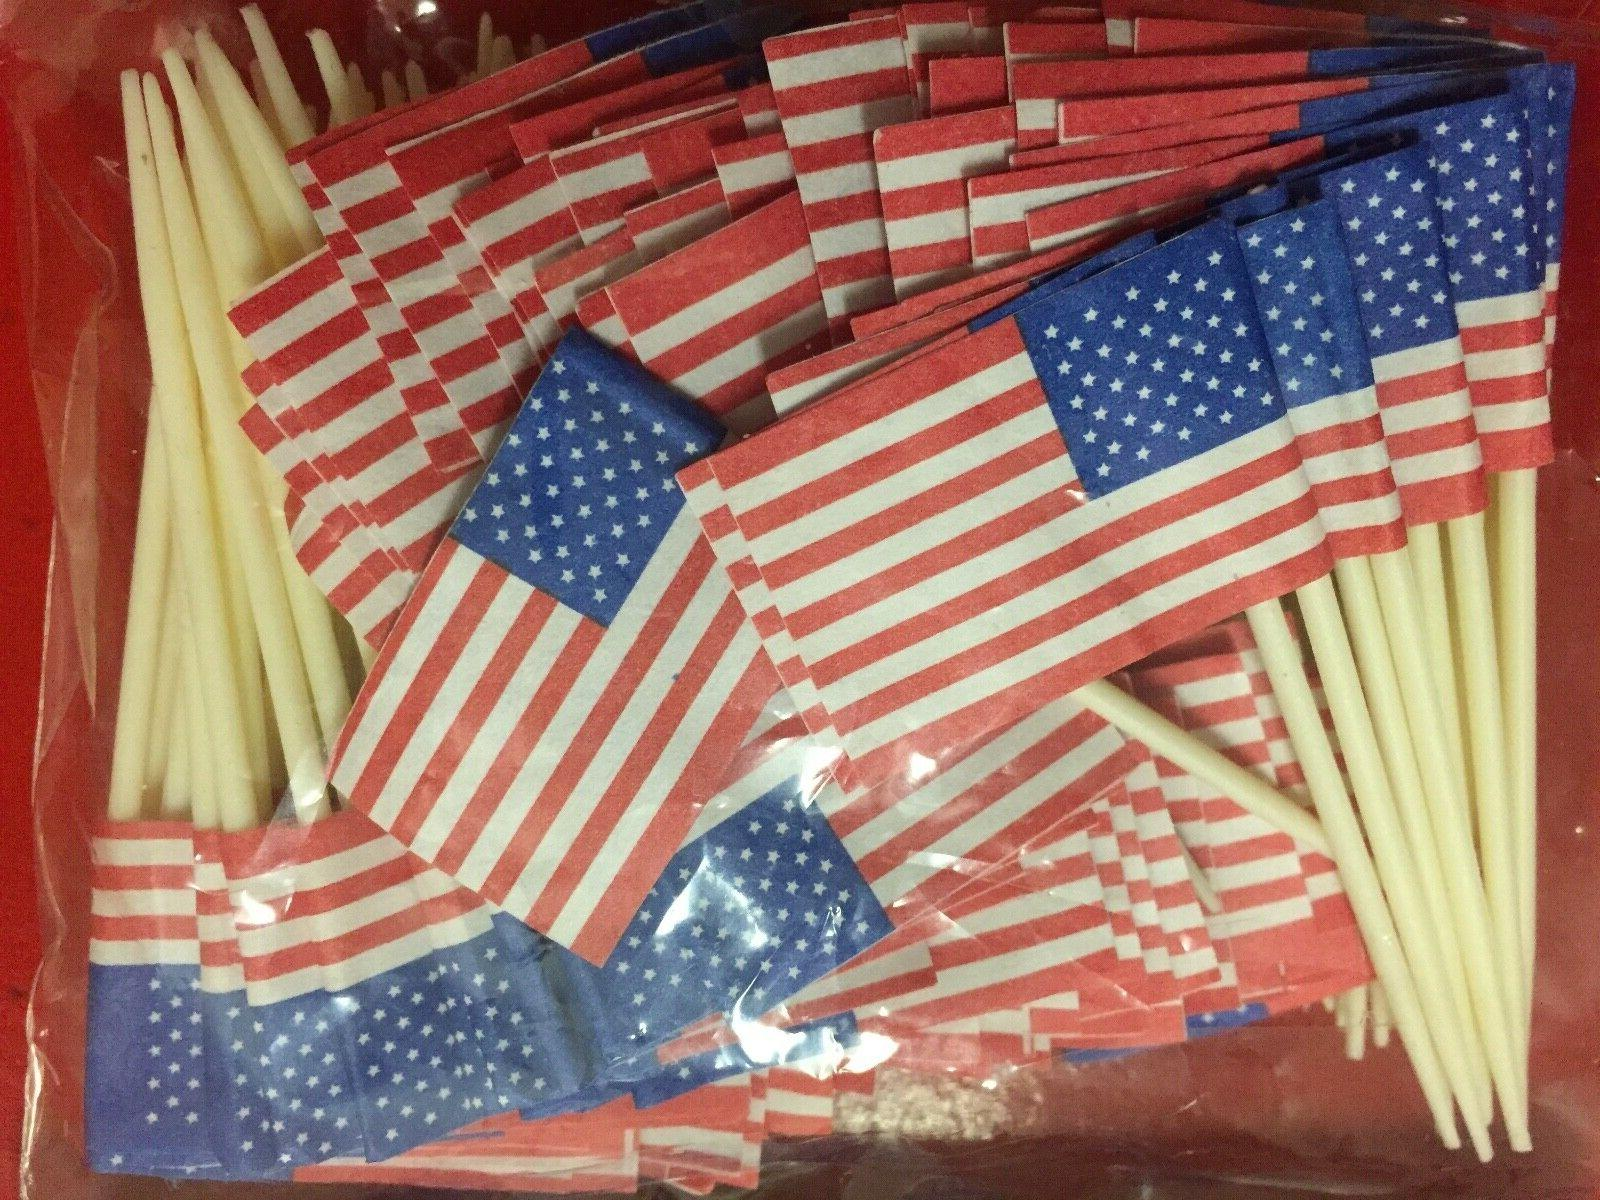 American Toppers toothpicks